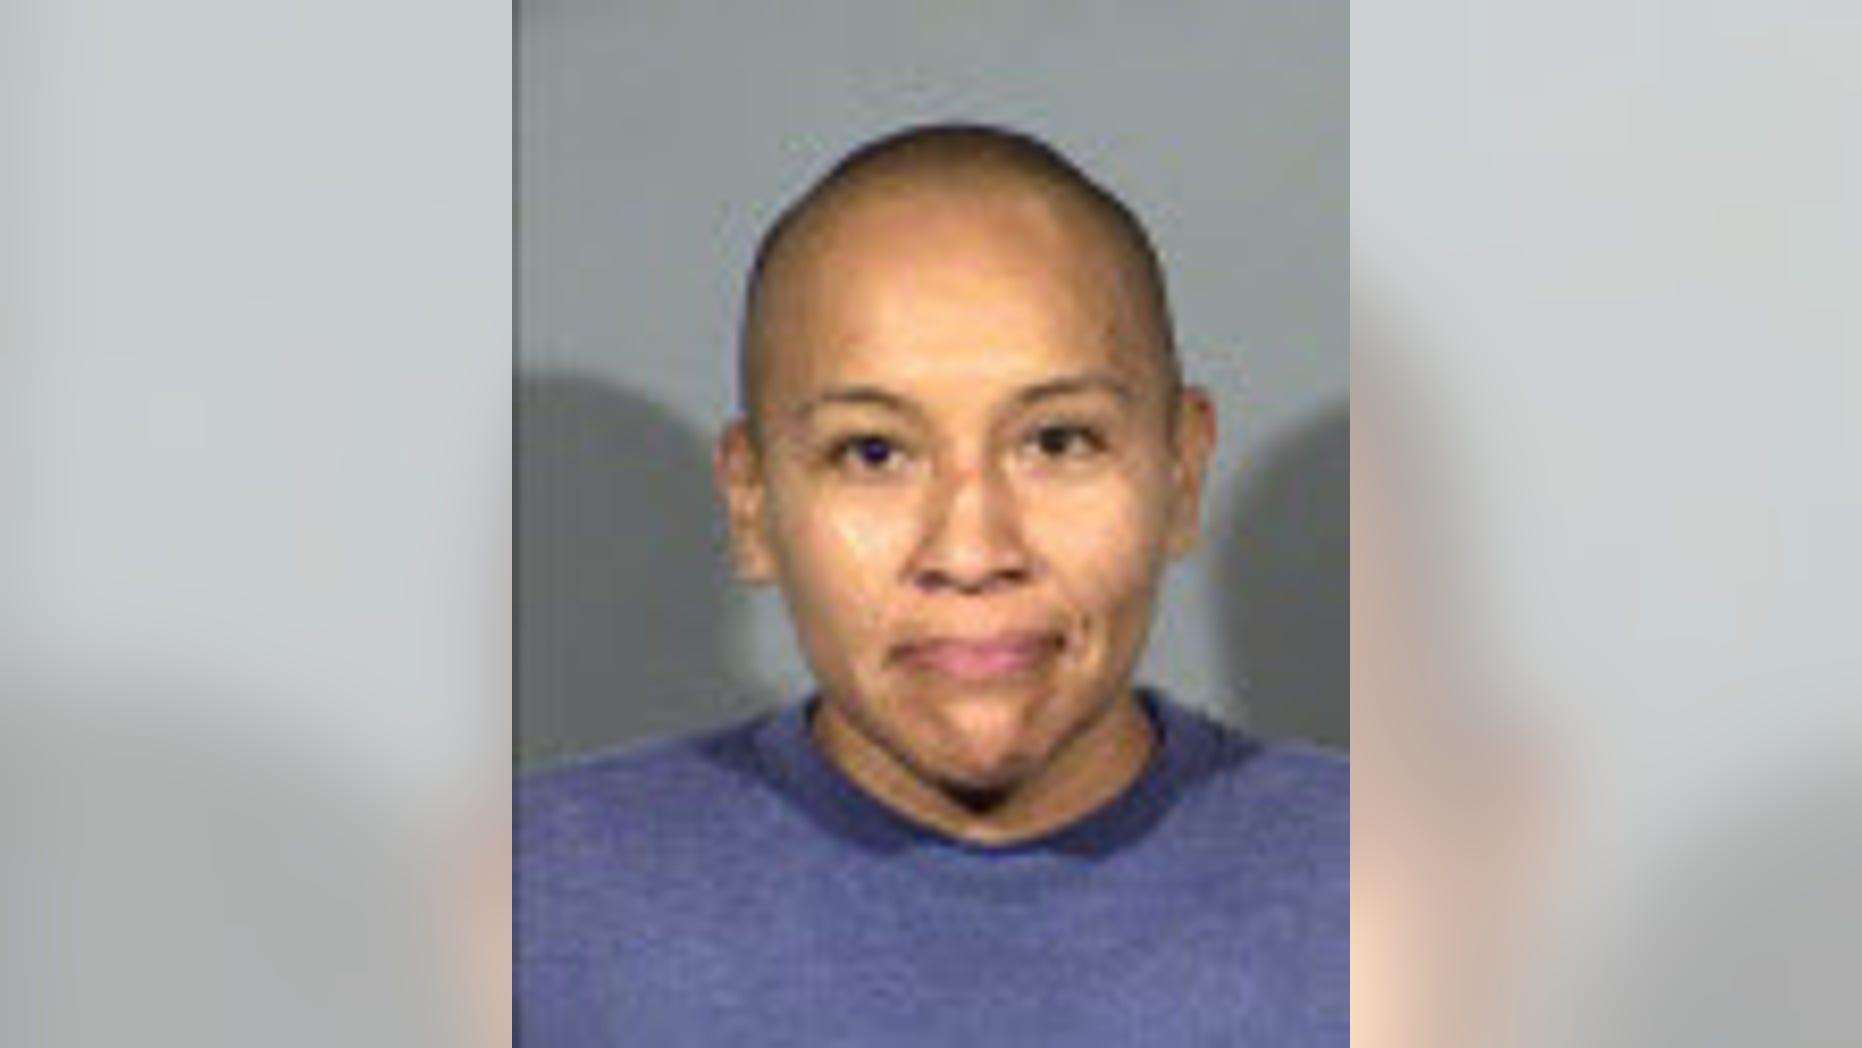 Christina Deswood, 37, was charged in connection with damage to vehicles in Las Vegas, authorities said.